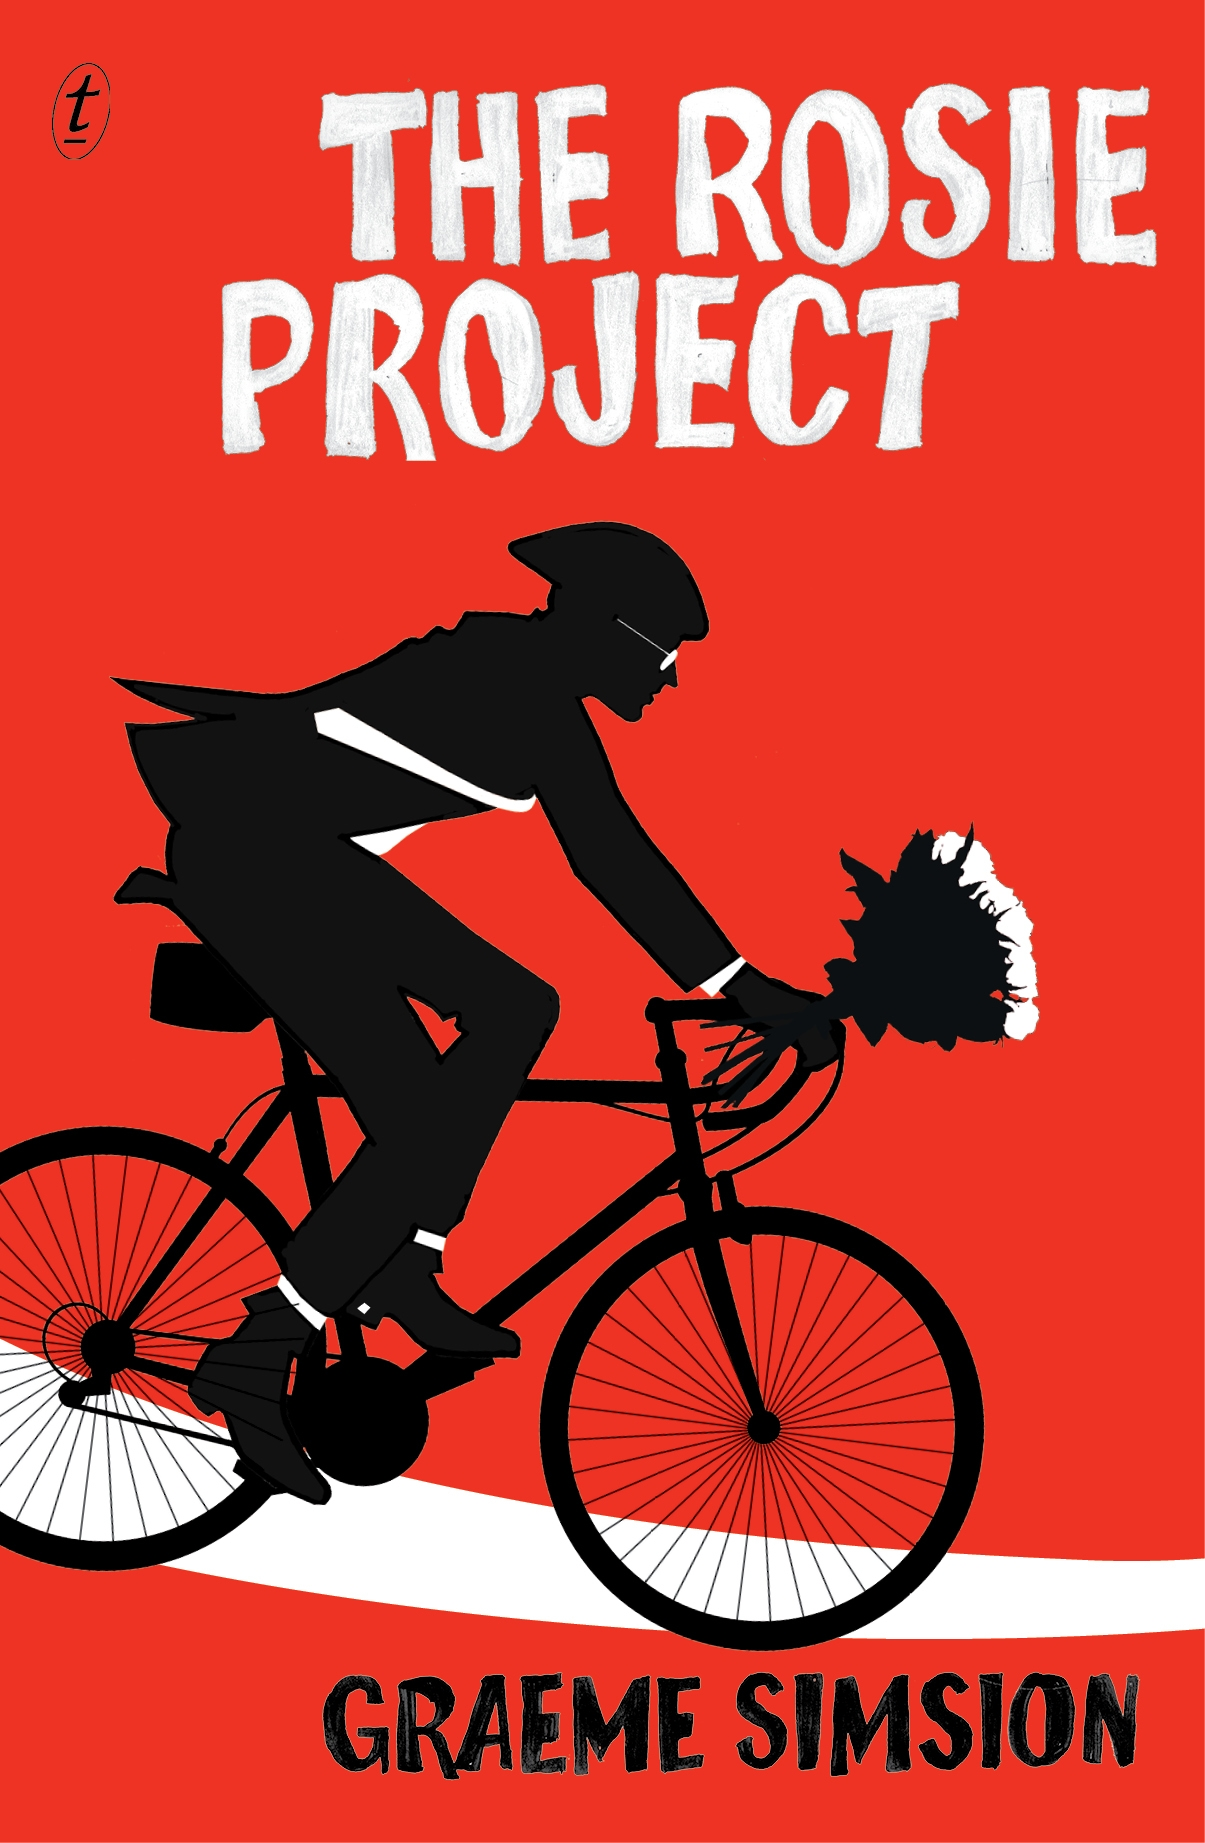 The Rosie Project by Graeme Simsion (Paperback, 2013)